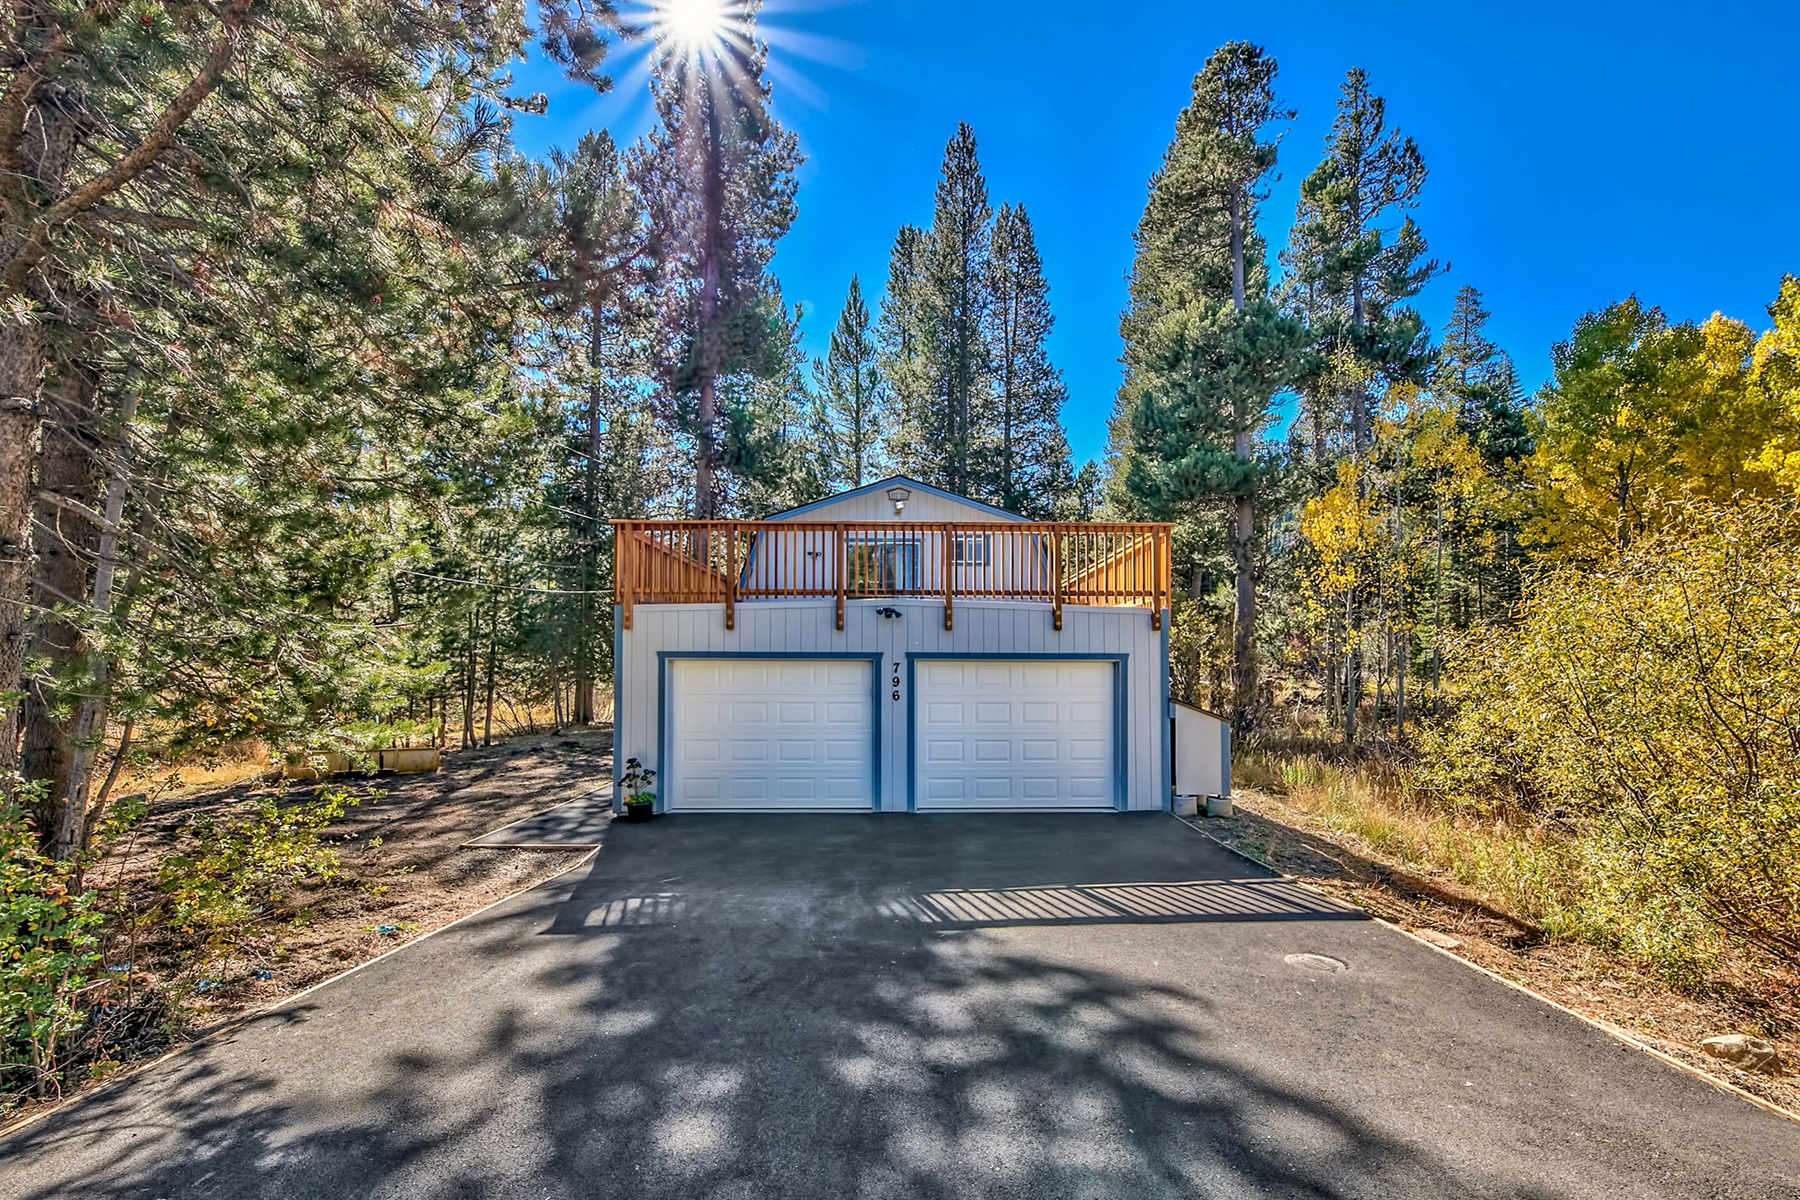 Property for Active at 796 Nahane Drive, South Lake Tahoe, Ca 96150 796 Nahane Drive South Lake Tahoe, California 96150 United States